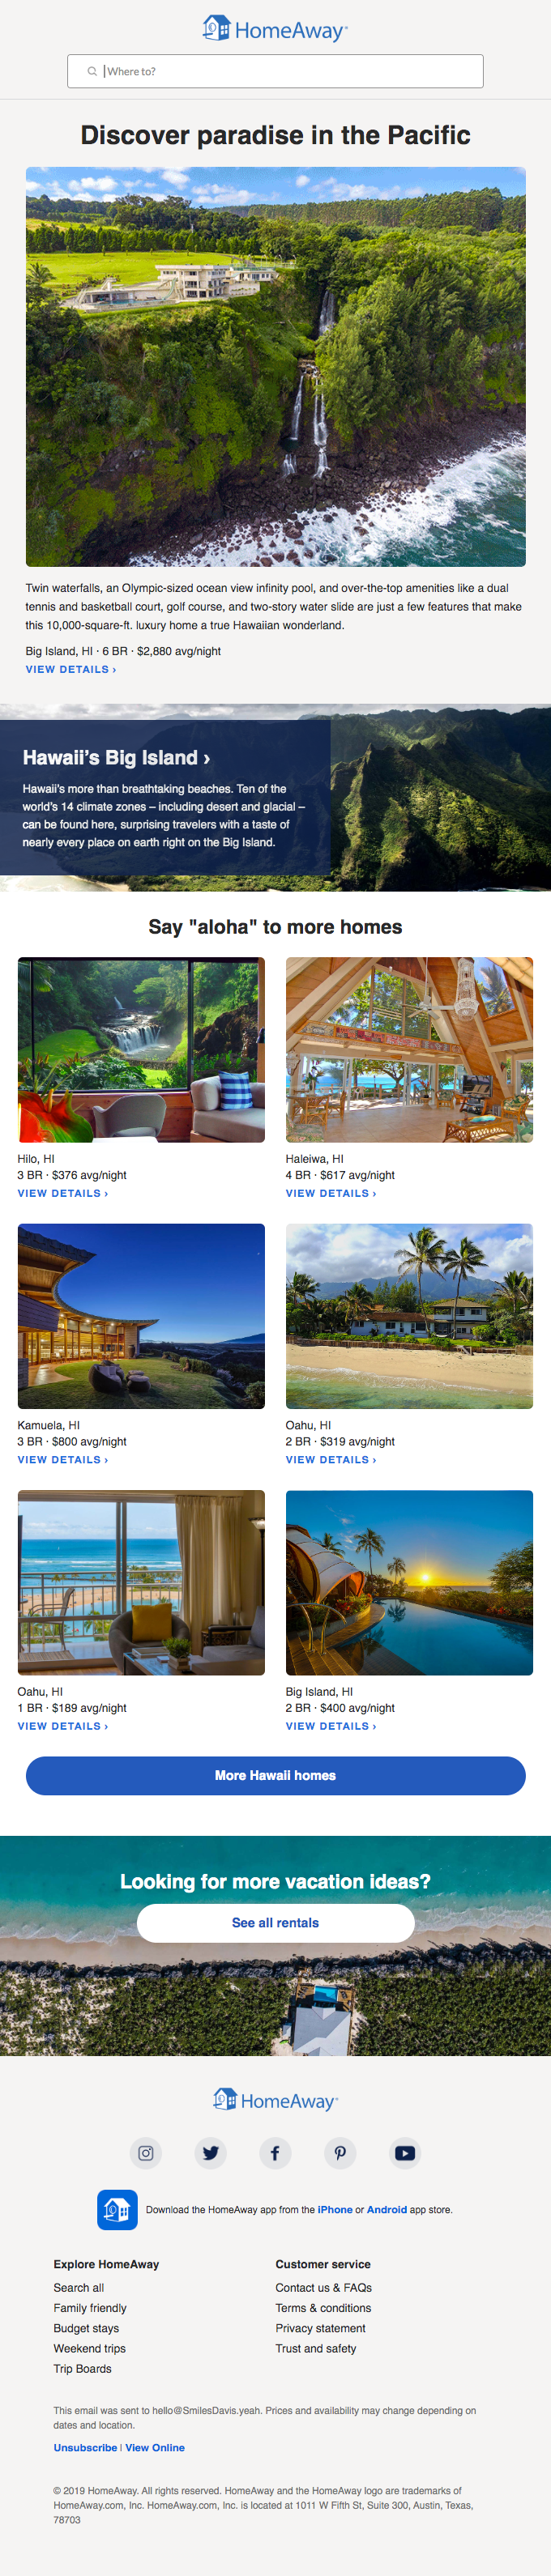 See the Hawaiian home that'll steal your heart